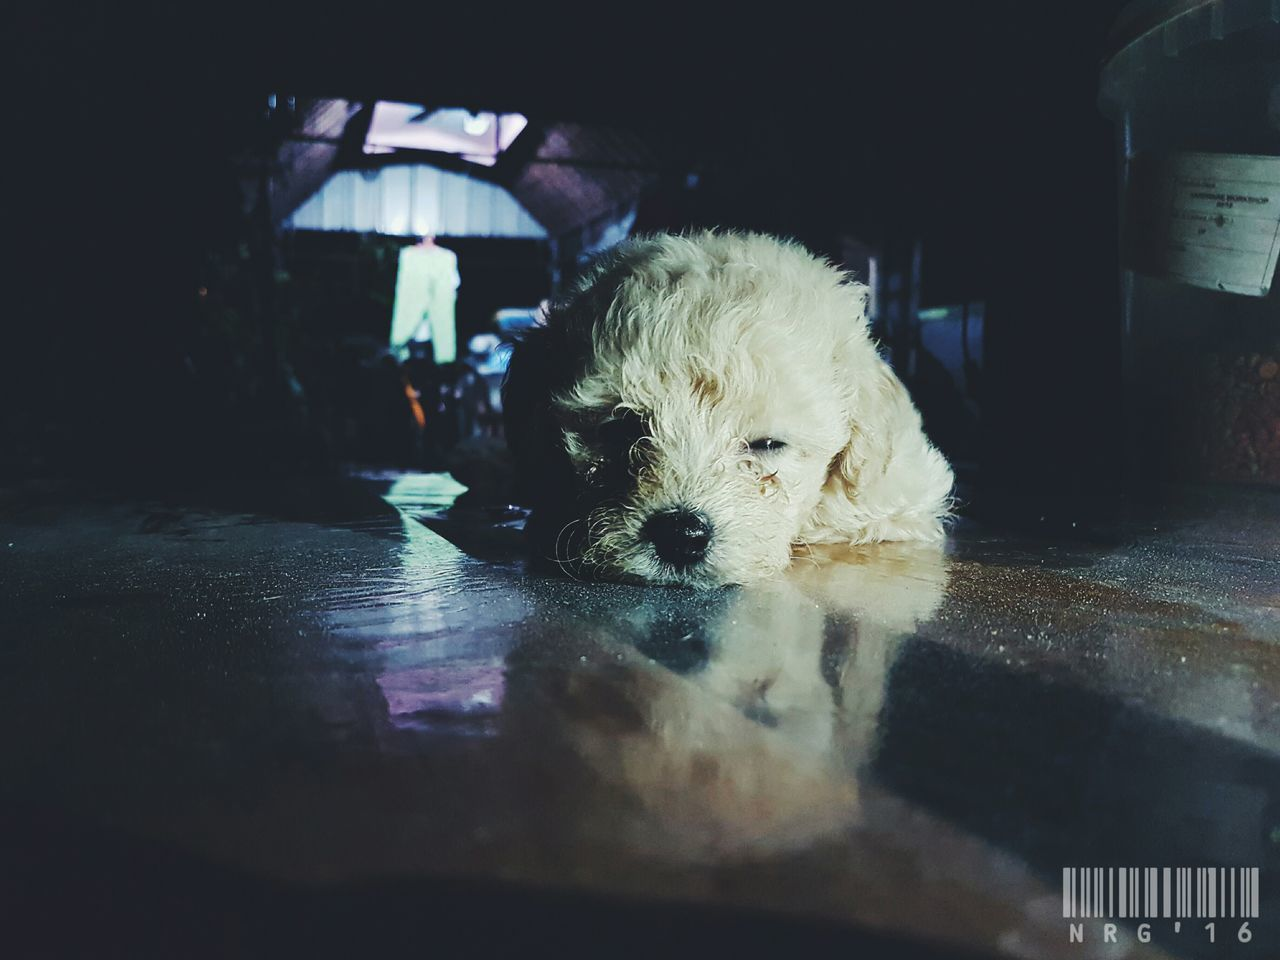 Sleepy head 🐩 One Animal Indoors  Adult Mammal People One Person Domestic Animals Pets Animal Themes Day One Man Only Adults Only Only Men Close-up Poodle🐩 Animal Dog Reflection Outdoors